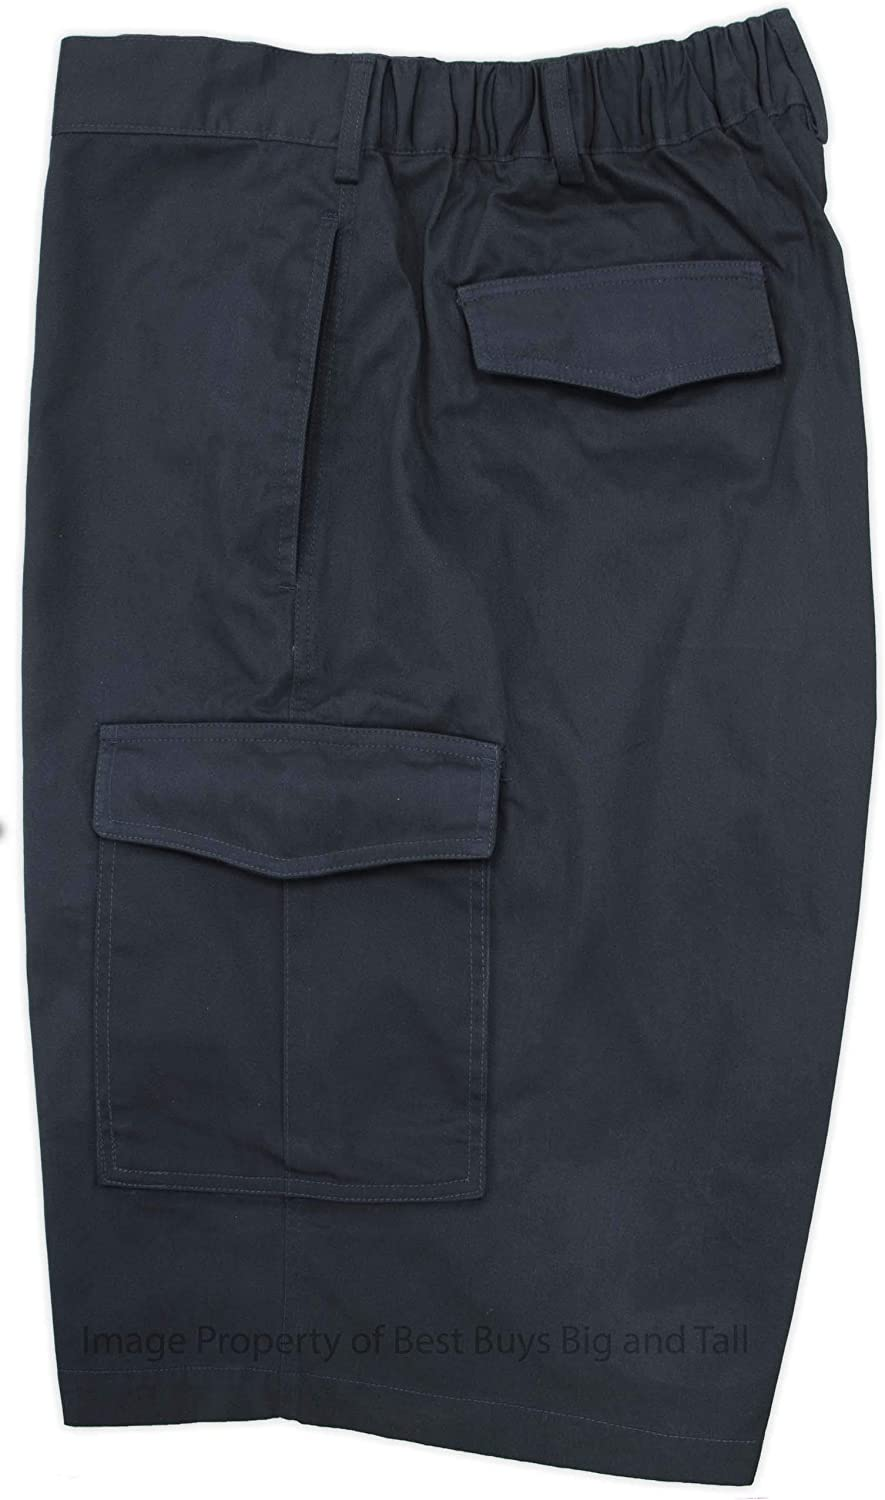 Falcon Bay Big & Tall Men's Cargo Shorts with Expandable Comfort Waistband